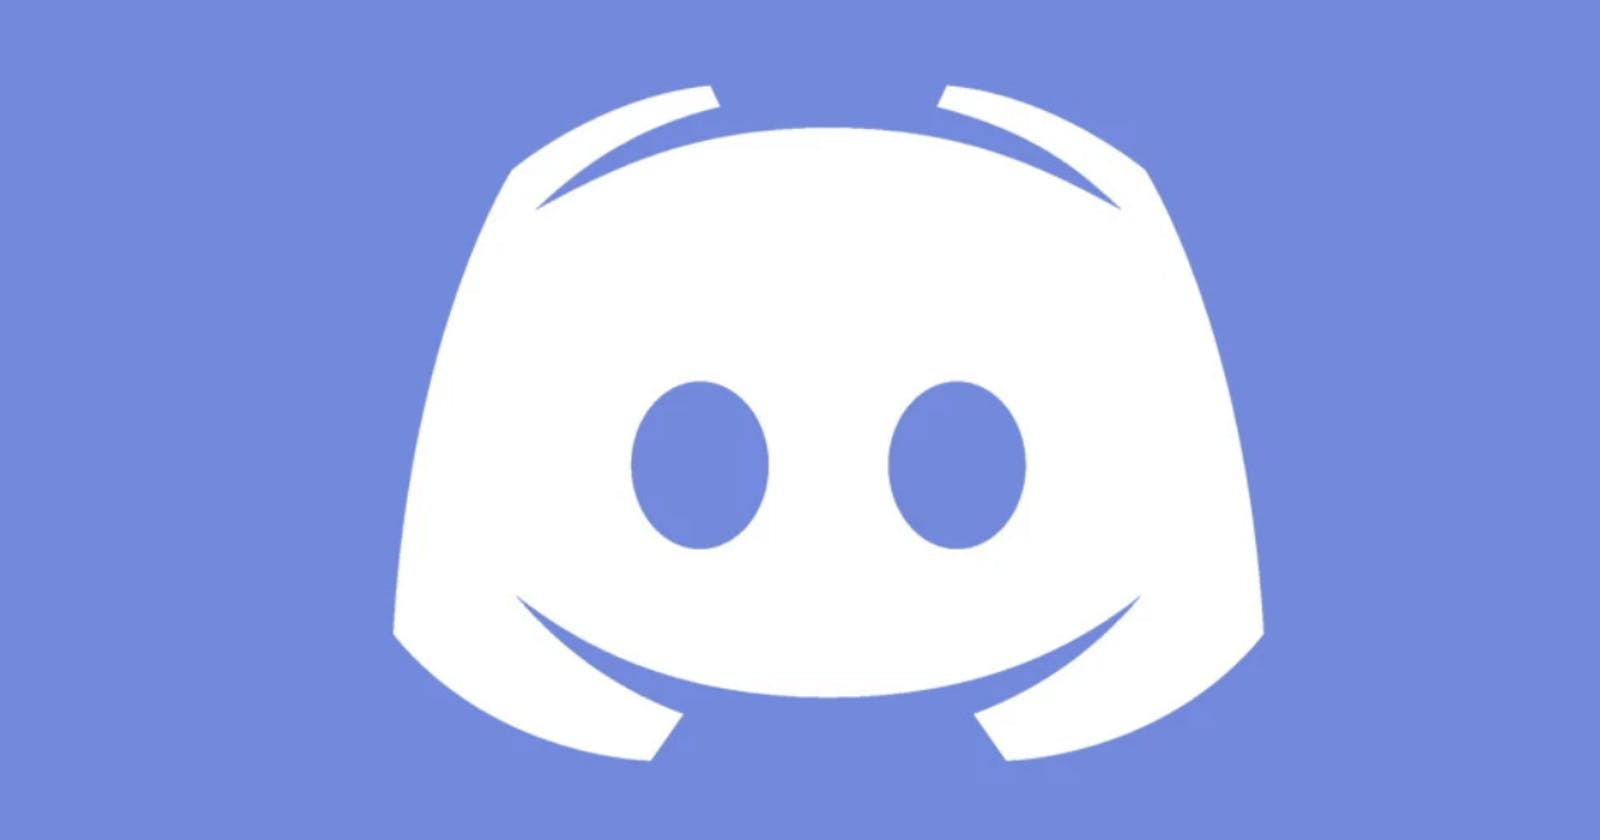 All About Scaler Discord Community